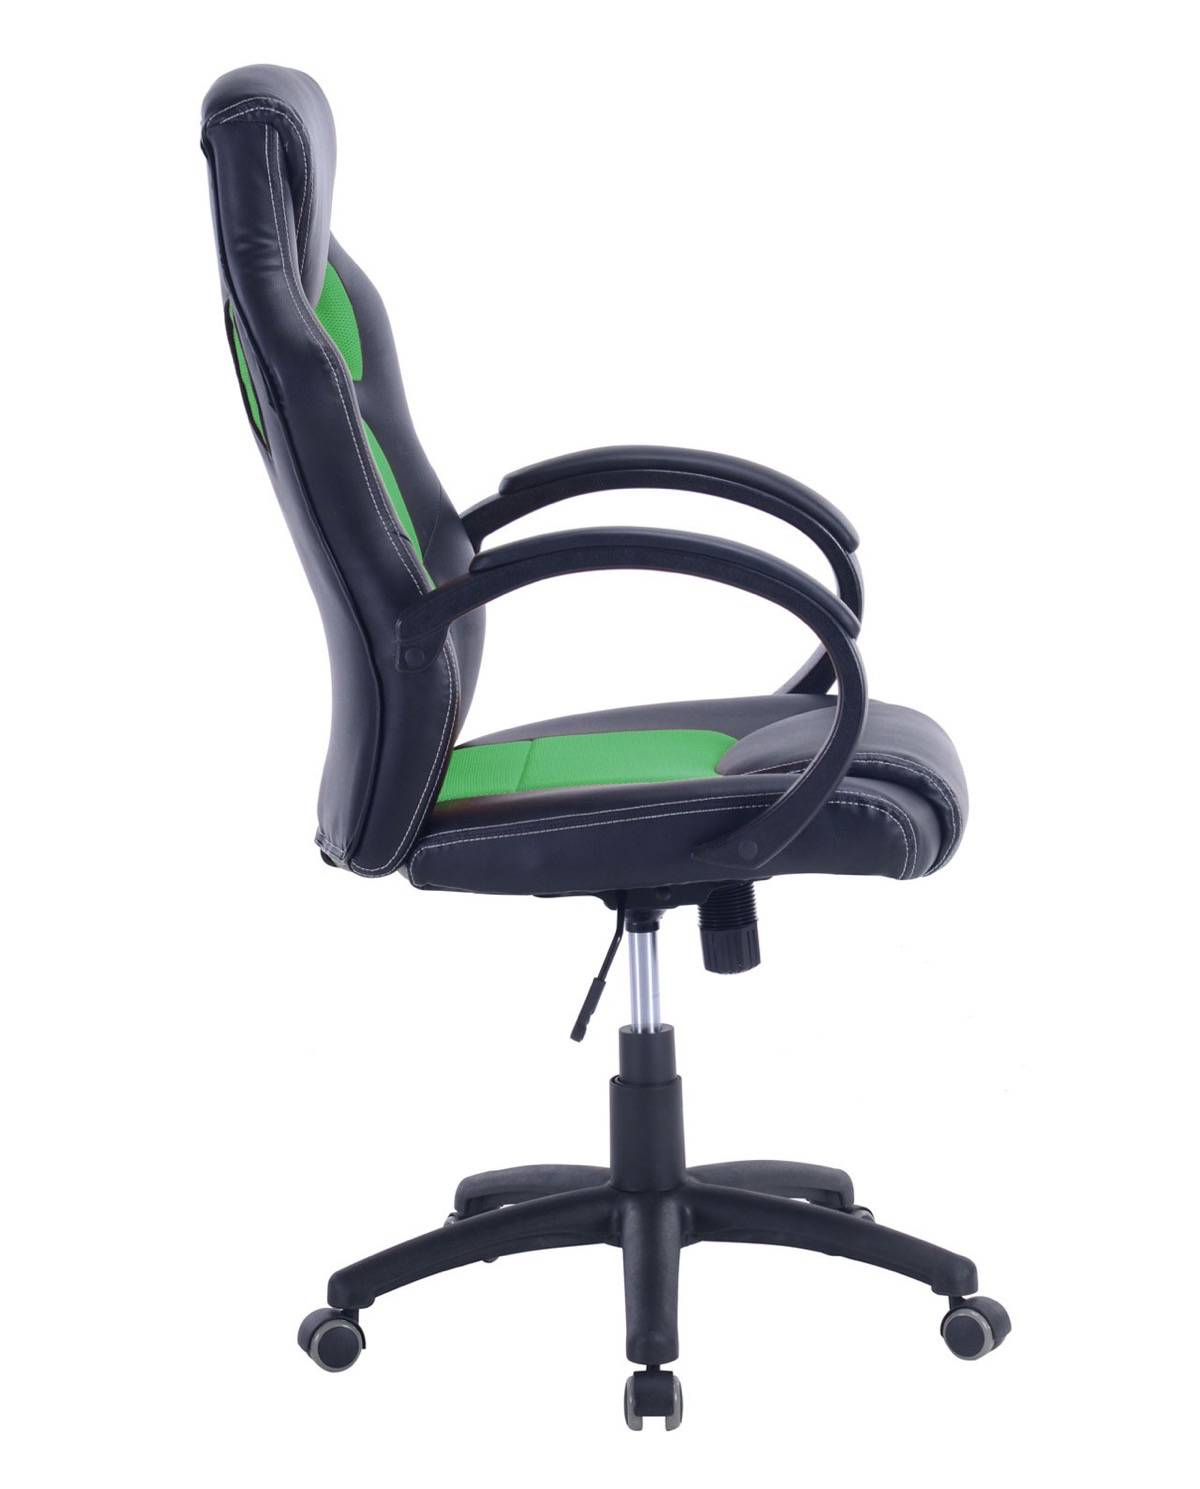 Link chaise de bureau racing gamers - Quelle chaise de bureau choisir ...